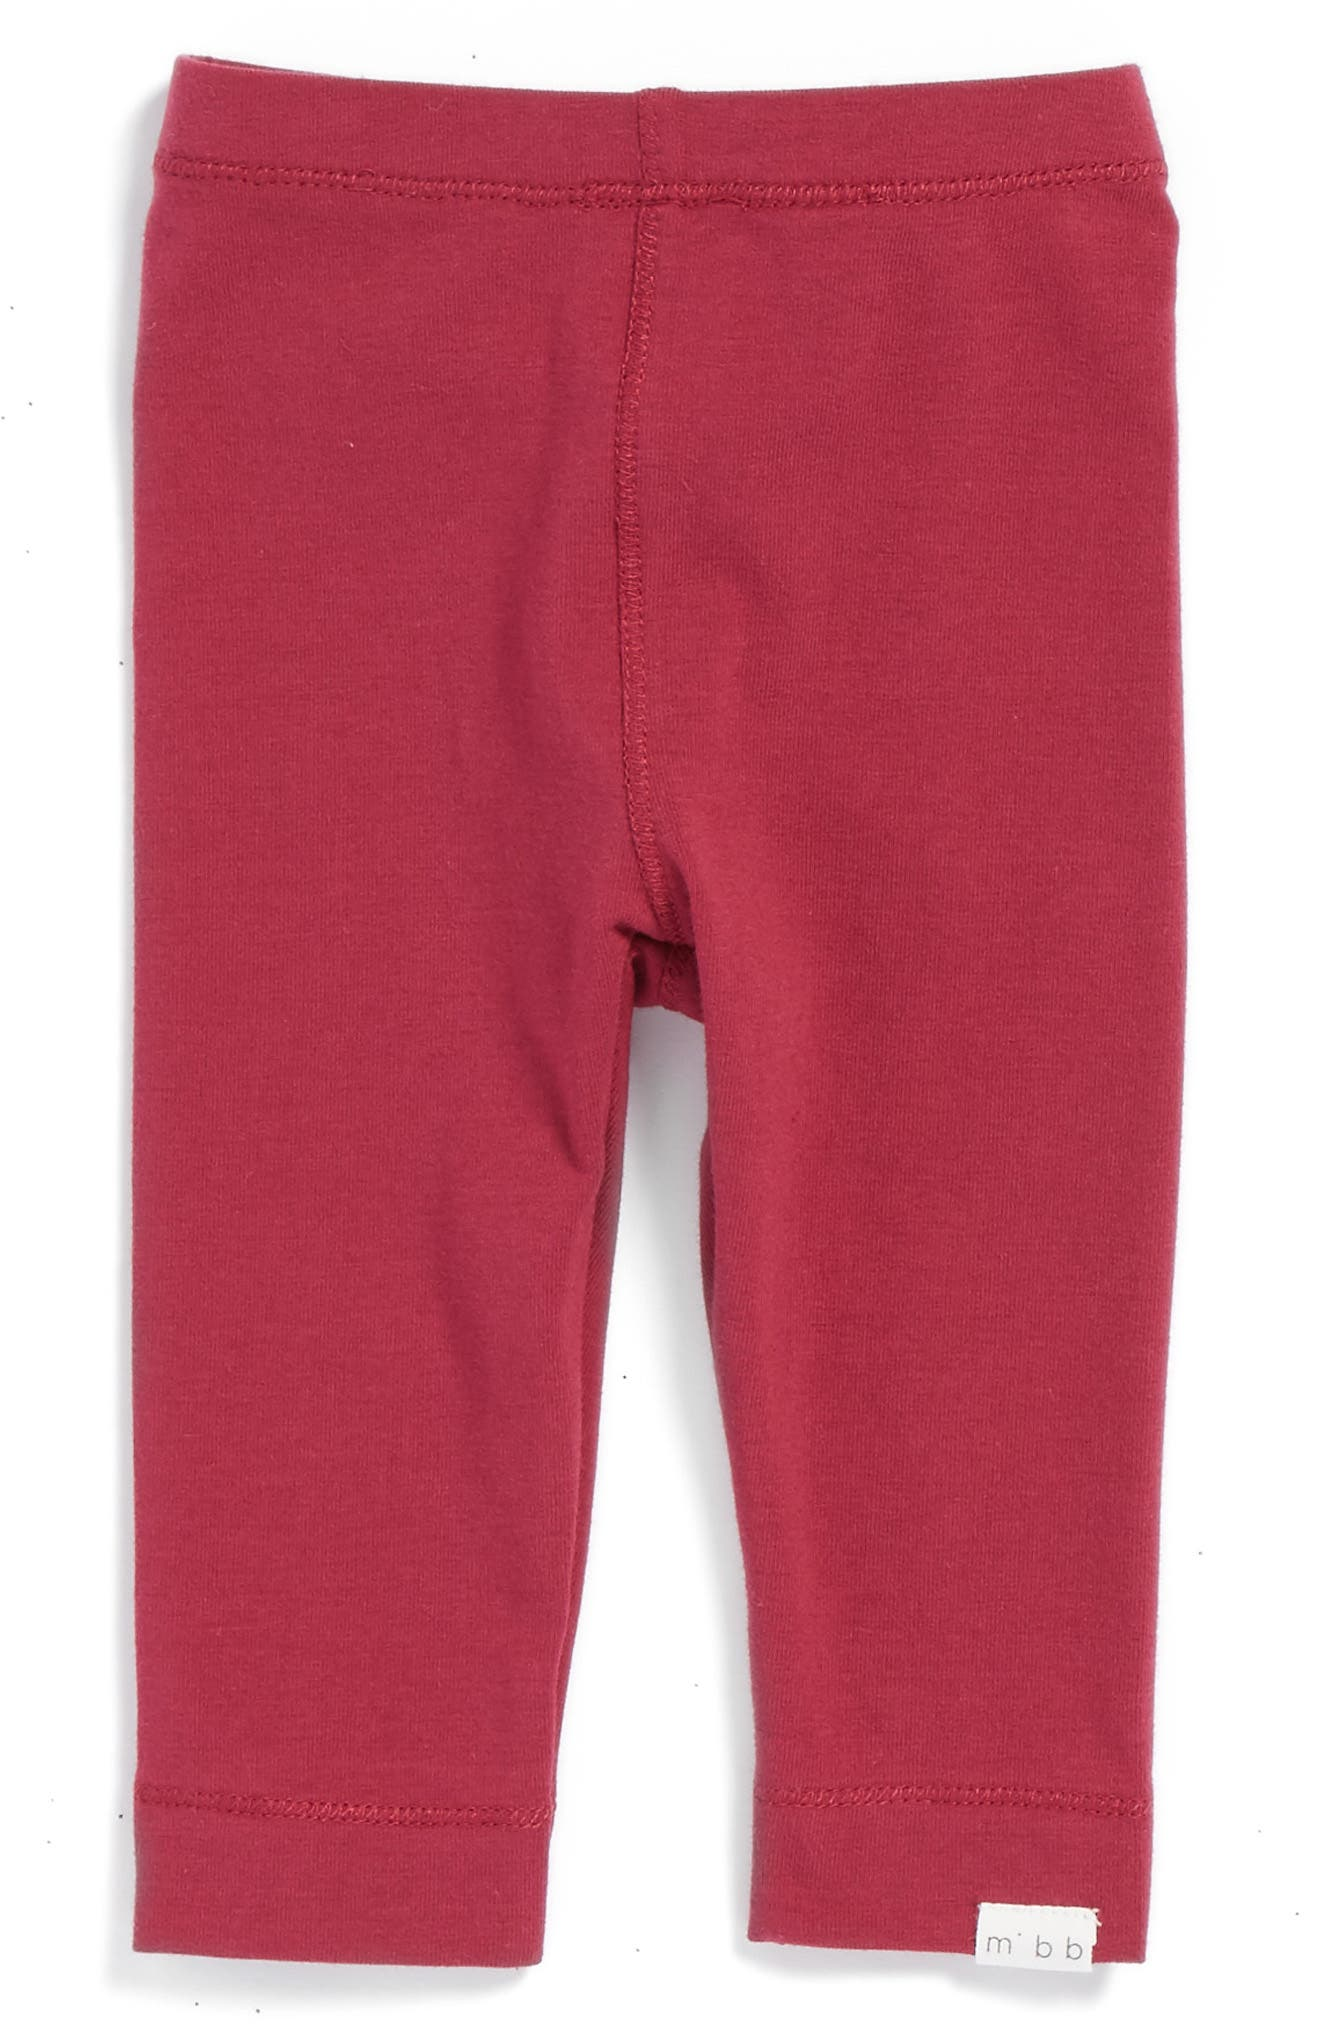 Alternate Image 1 Selected - Miles Baby Knit Leggings (Baby Girls)